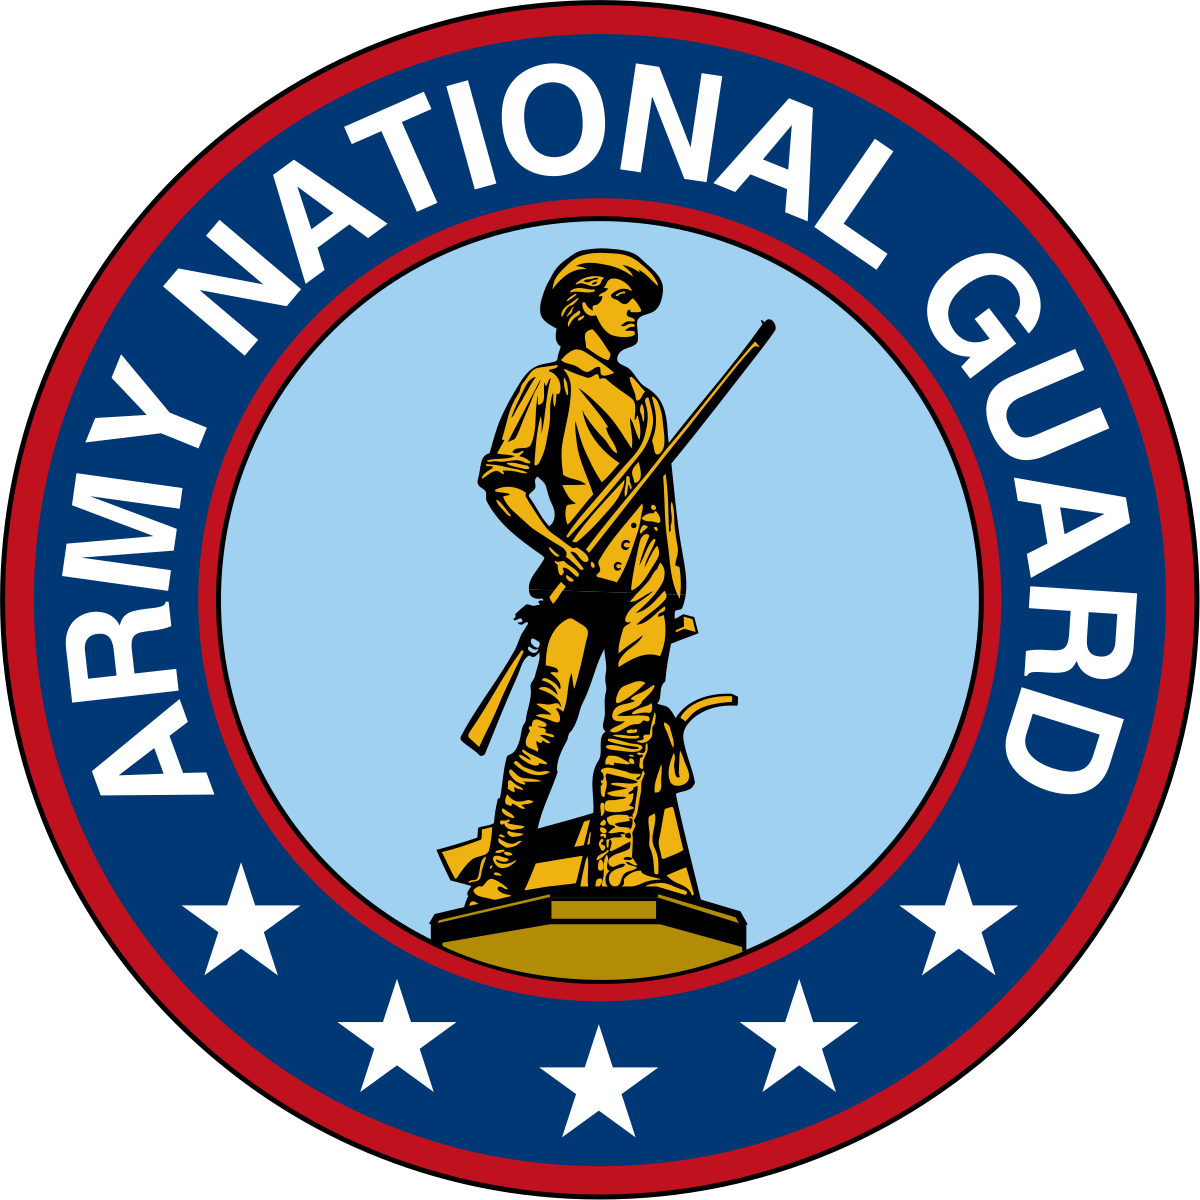 California army national guard. Military clipart troops us